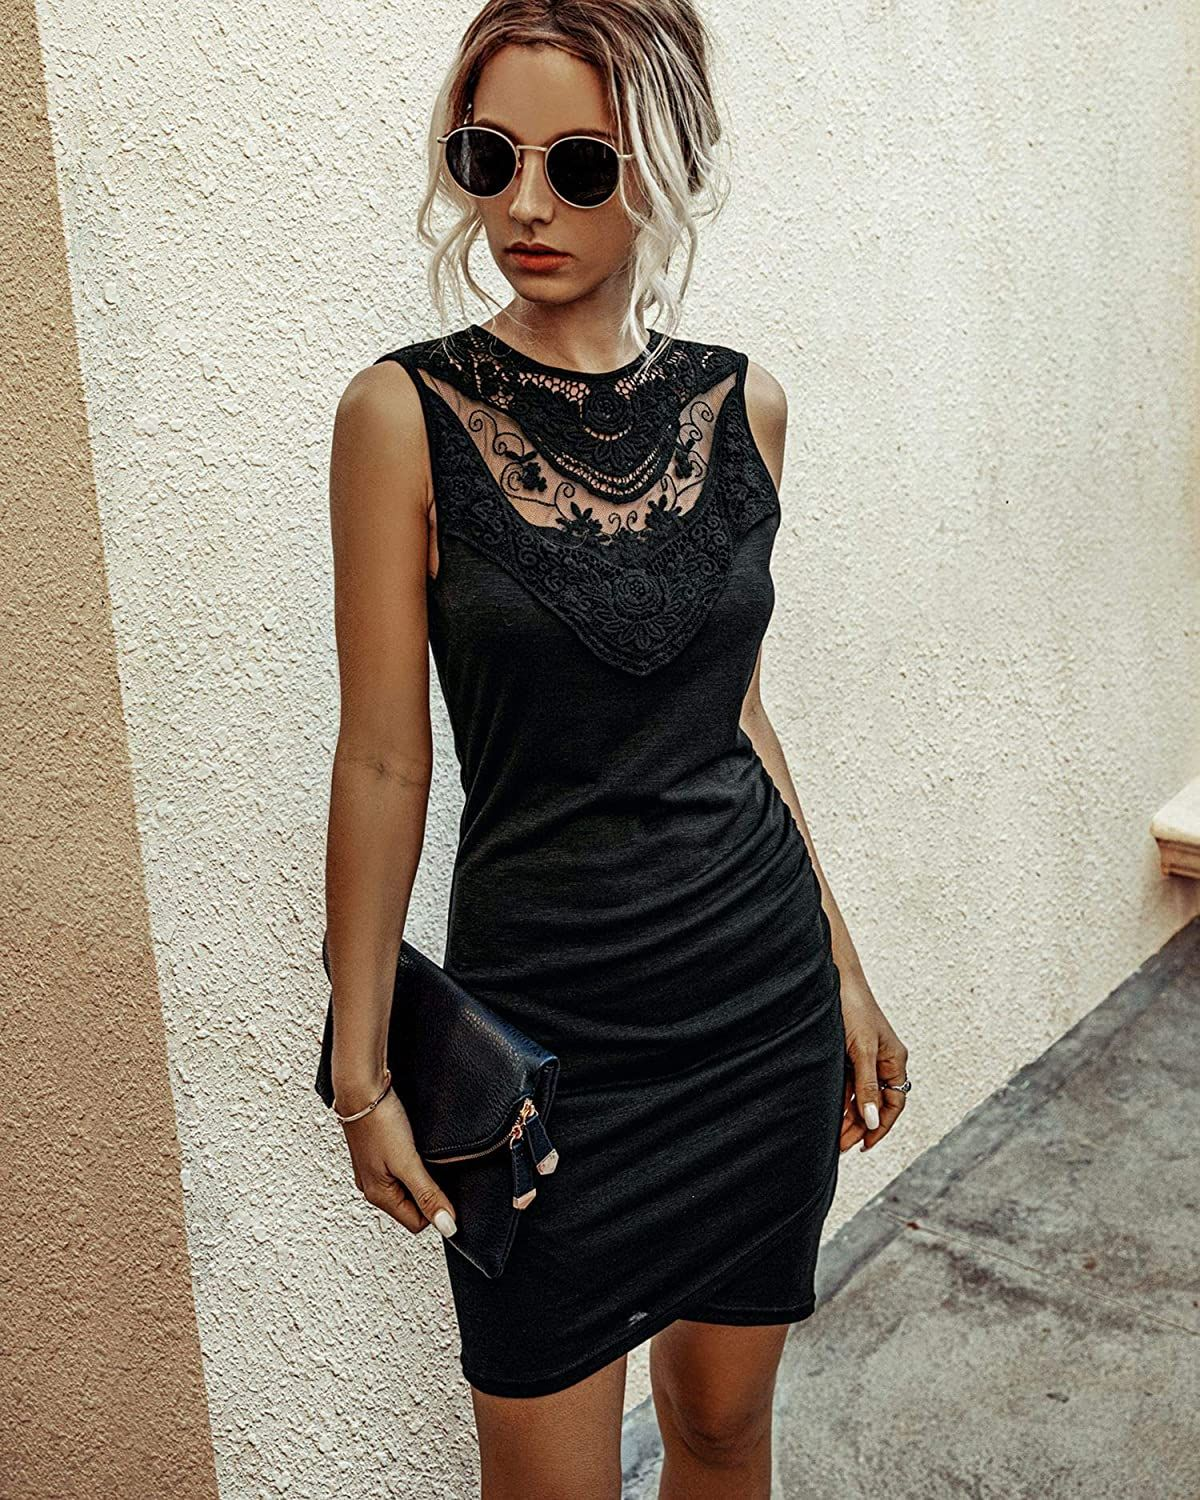 Lbd Women Dress Summer Casual Crew Neck Ruched Stretchy Bodycon T Shirt Short Mini Dress In 2020 Short Mini Dress Summer Dresses For Women Casual Summer Dresses [ 1500 x 1200 Pixel ]